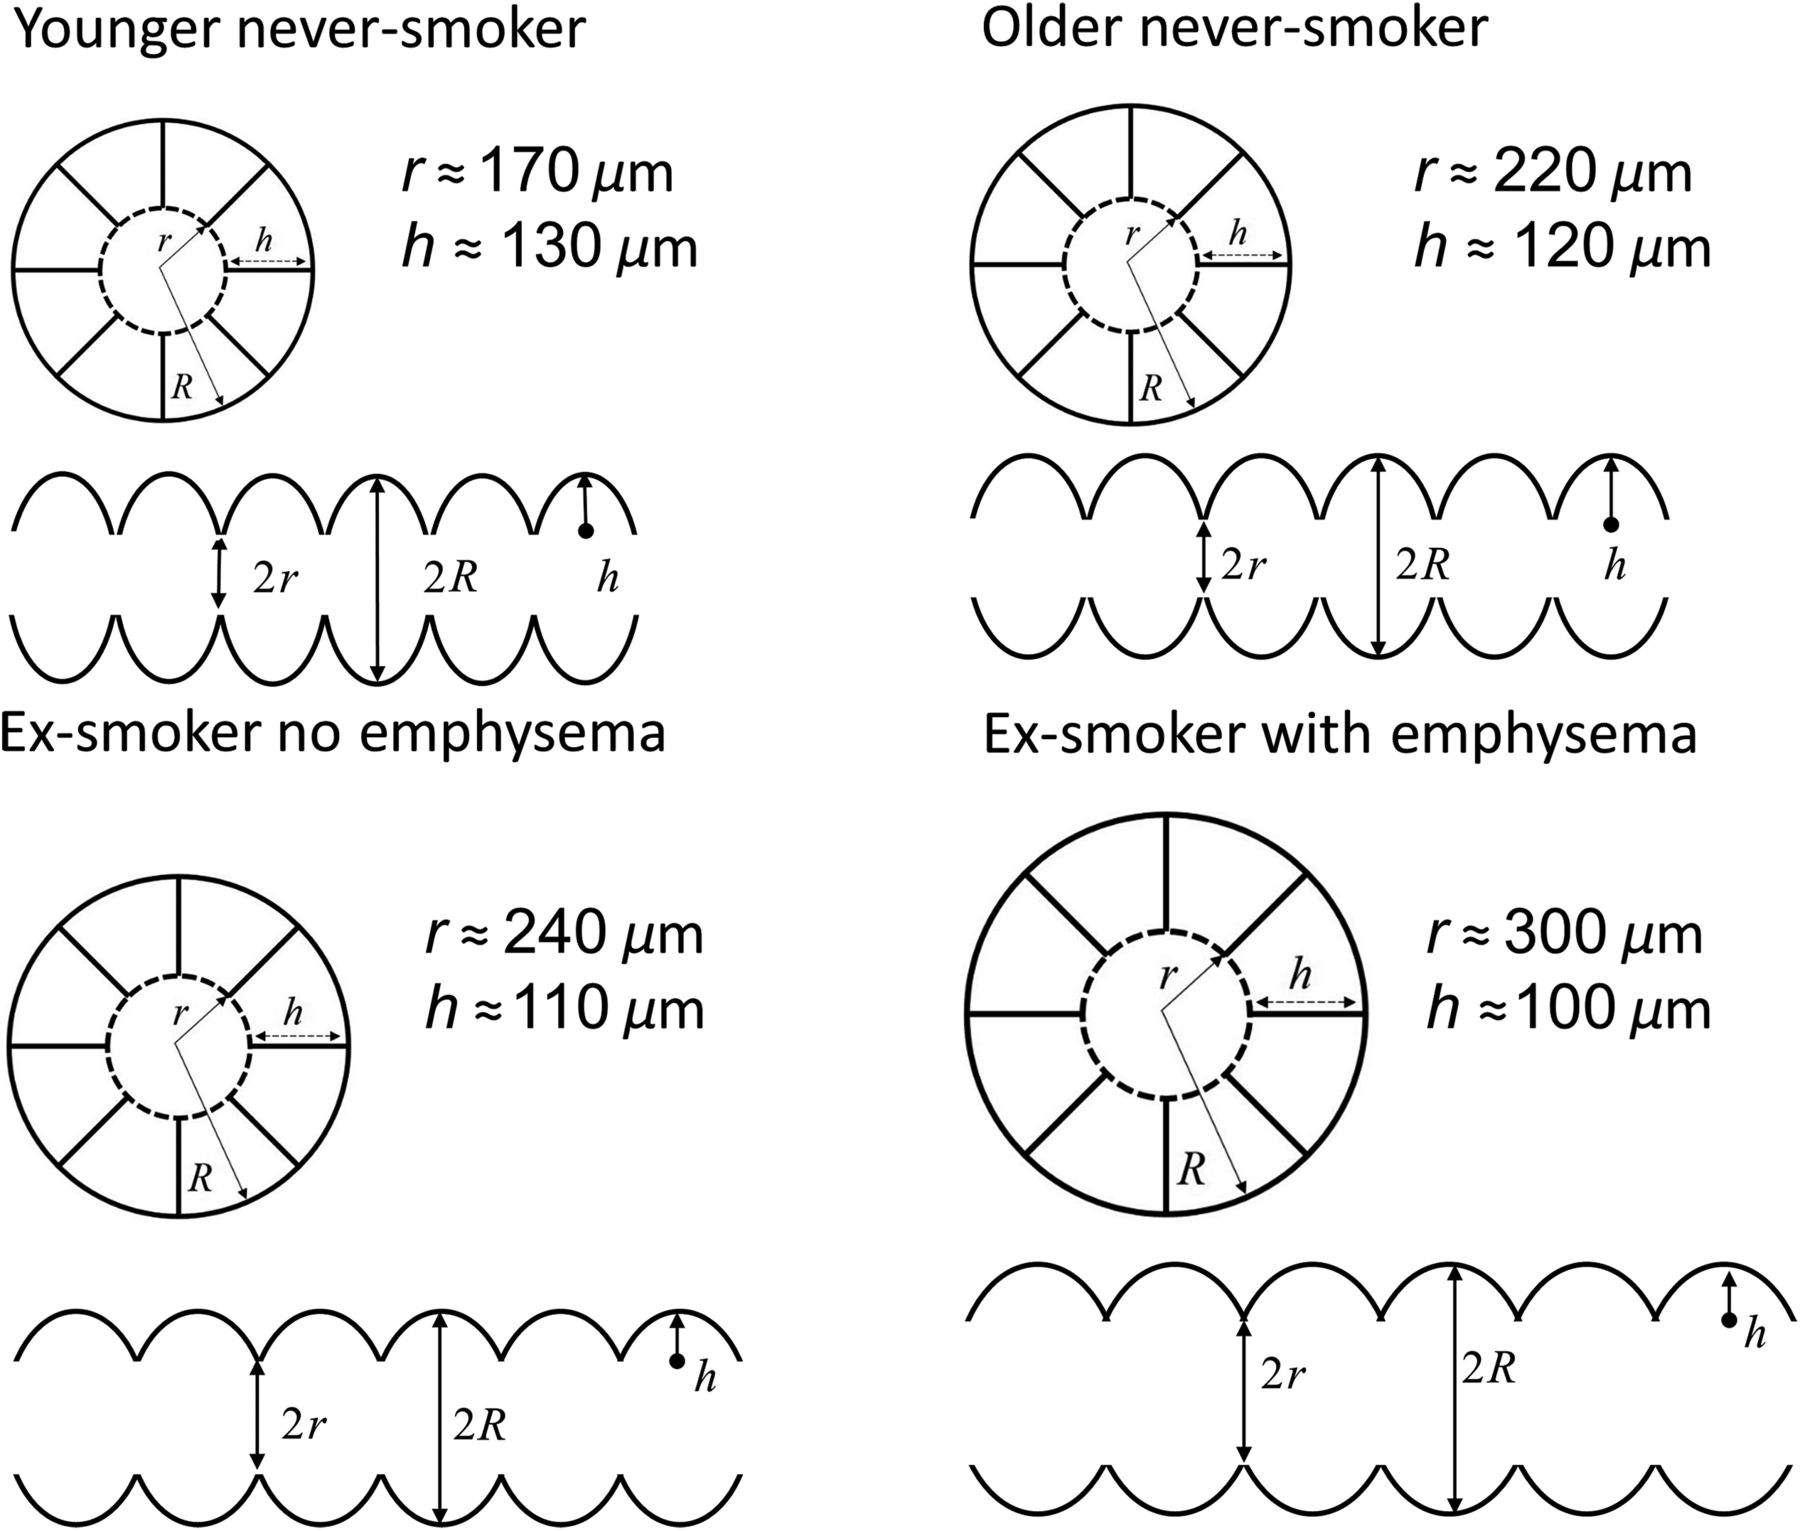 Figure 4. Alveolar duct schematic. Acinar duct and alveolar morphological parameters were based on Weibel model (Weibel 1963) for acinar duct parameters shown for a representative young never‐smoker (Quirk et al. 2015), elderly never‐smoker, and elderly never‐smoker with and without emphysema.